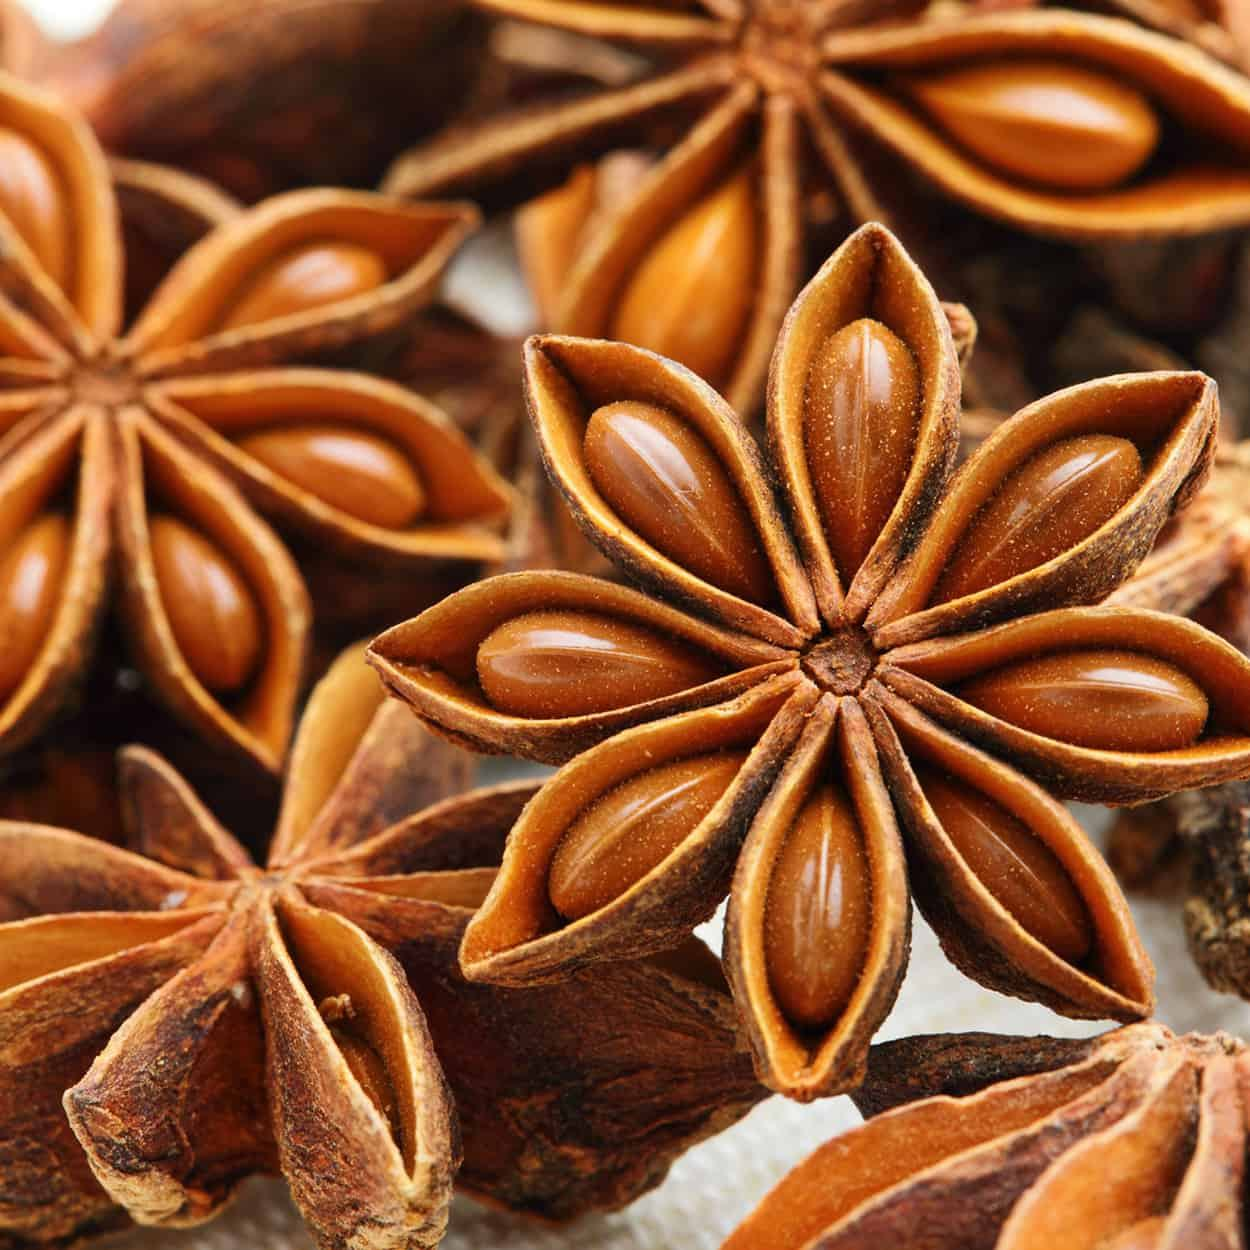 Chinese Spices&Herbs supplier wholesales Anise Seed Whole Anise Seed Star Ground Anise Seed Star Whole for Seasoning Materials